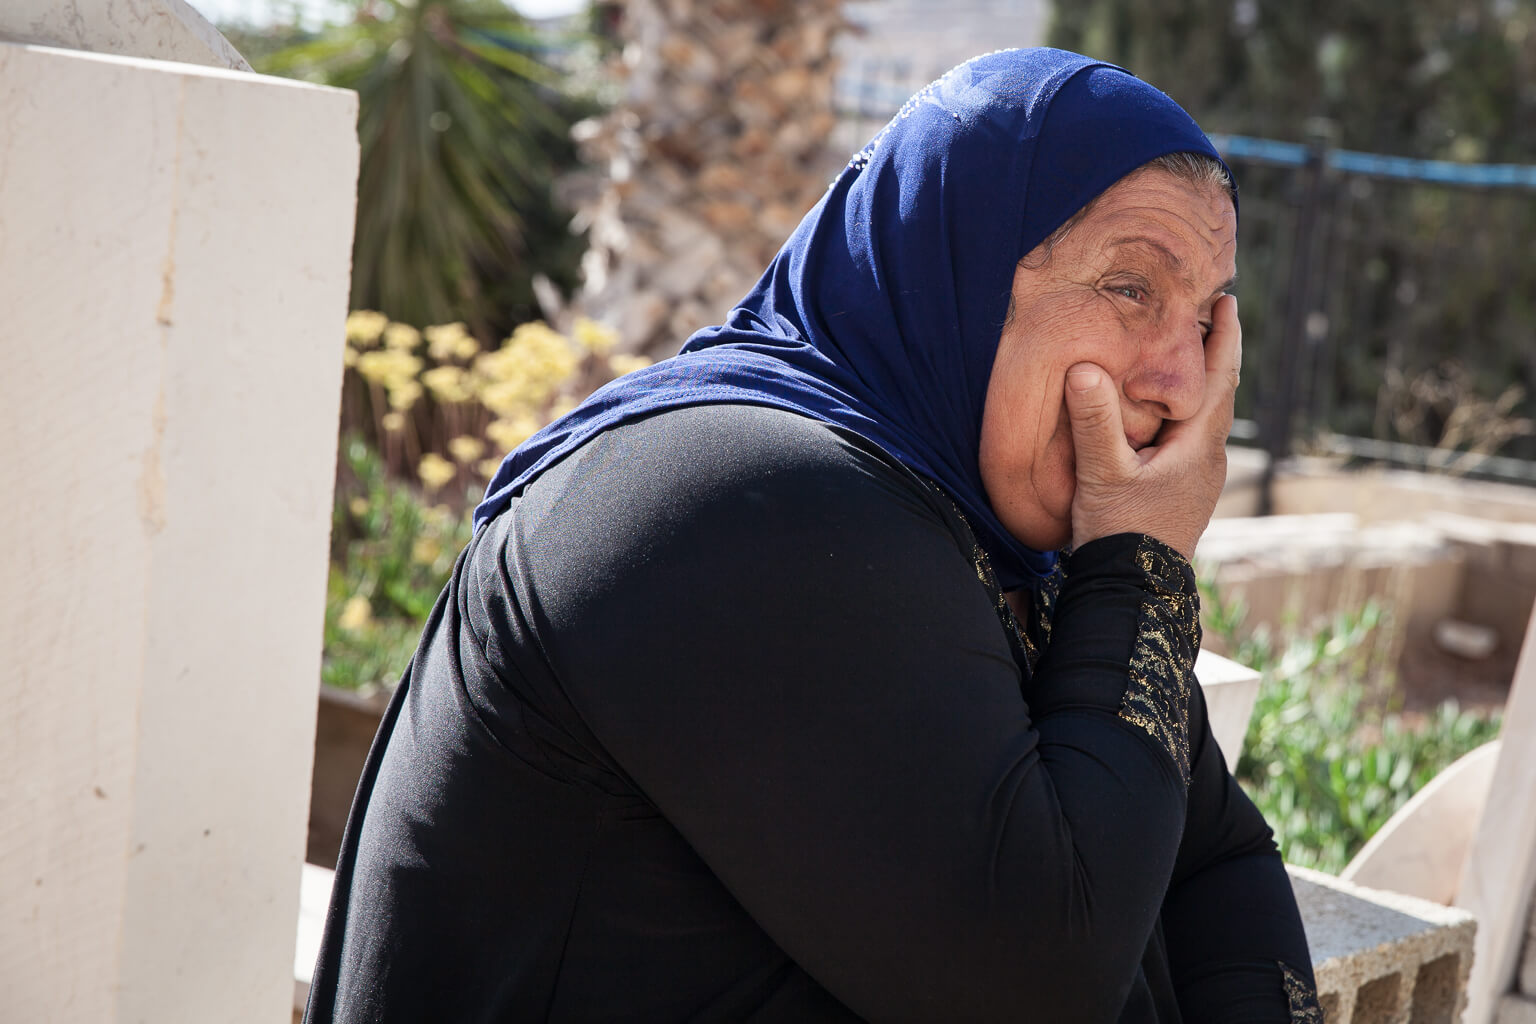 """The mother of Issa Faraj visits her son's grave. Issa's brother, Mohammed, says, """"He was 23 years old. He was shot when he was at home with two bullets by a sniper...When he got shot he was carrying his daughter...Until today the window in his room is witnessing. We kept everything as it is, we didn't change anything."""" He continues, """"It feels like he felt that he was going to join his God, to die, as a martyr."""" (Photo: Rebecca George)"""